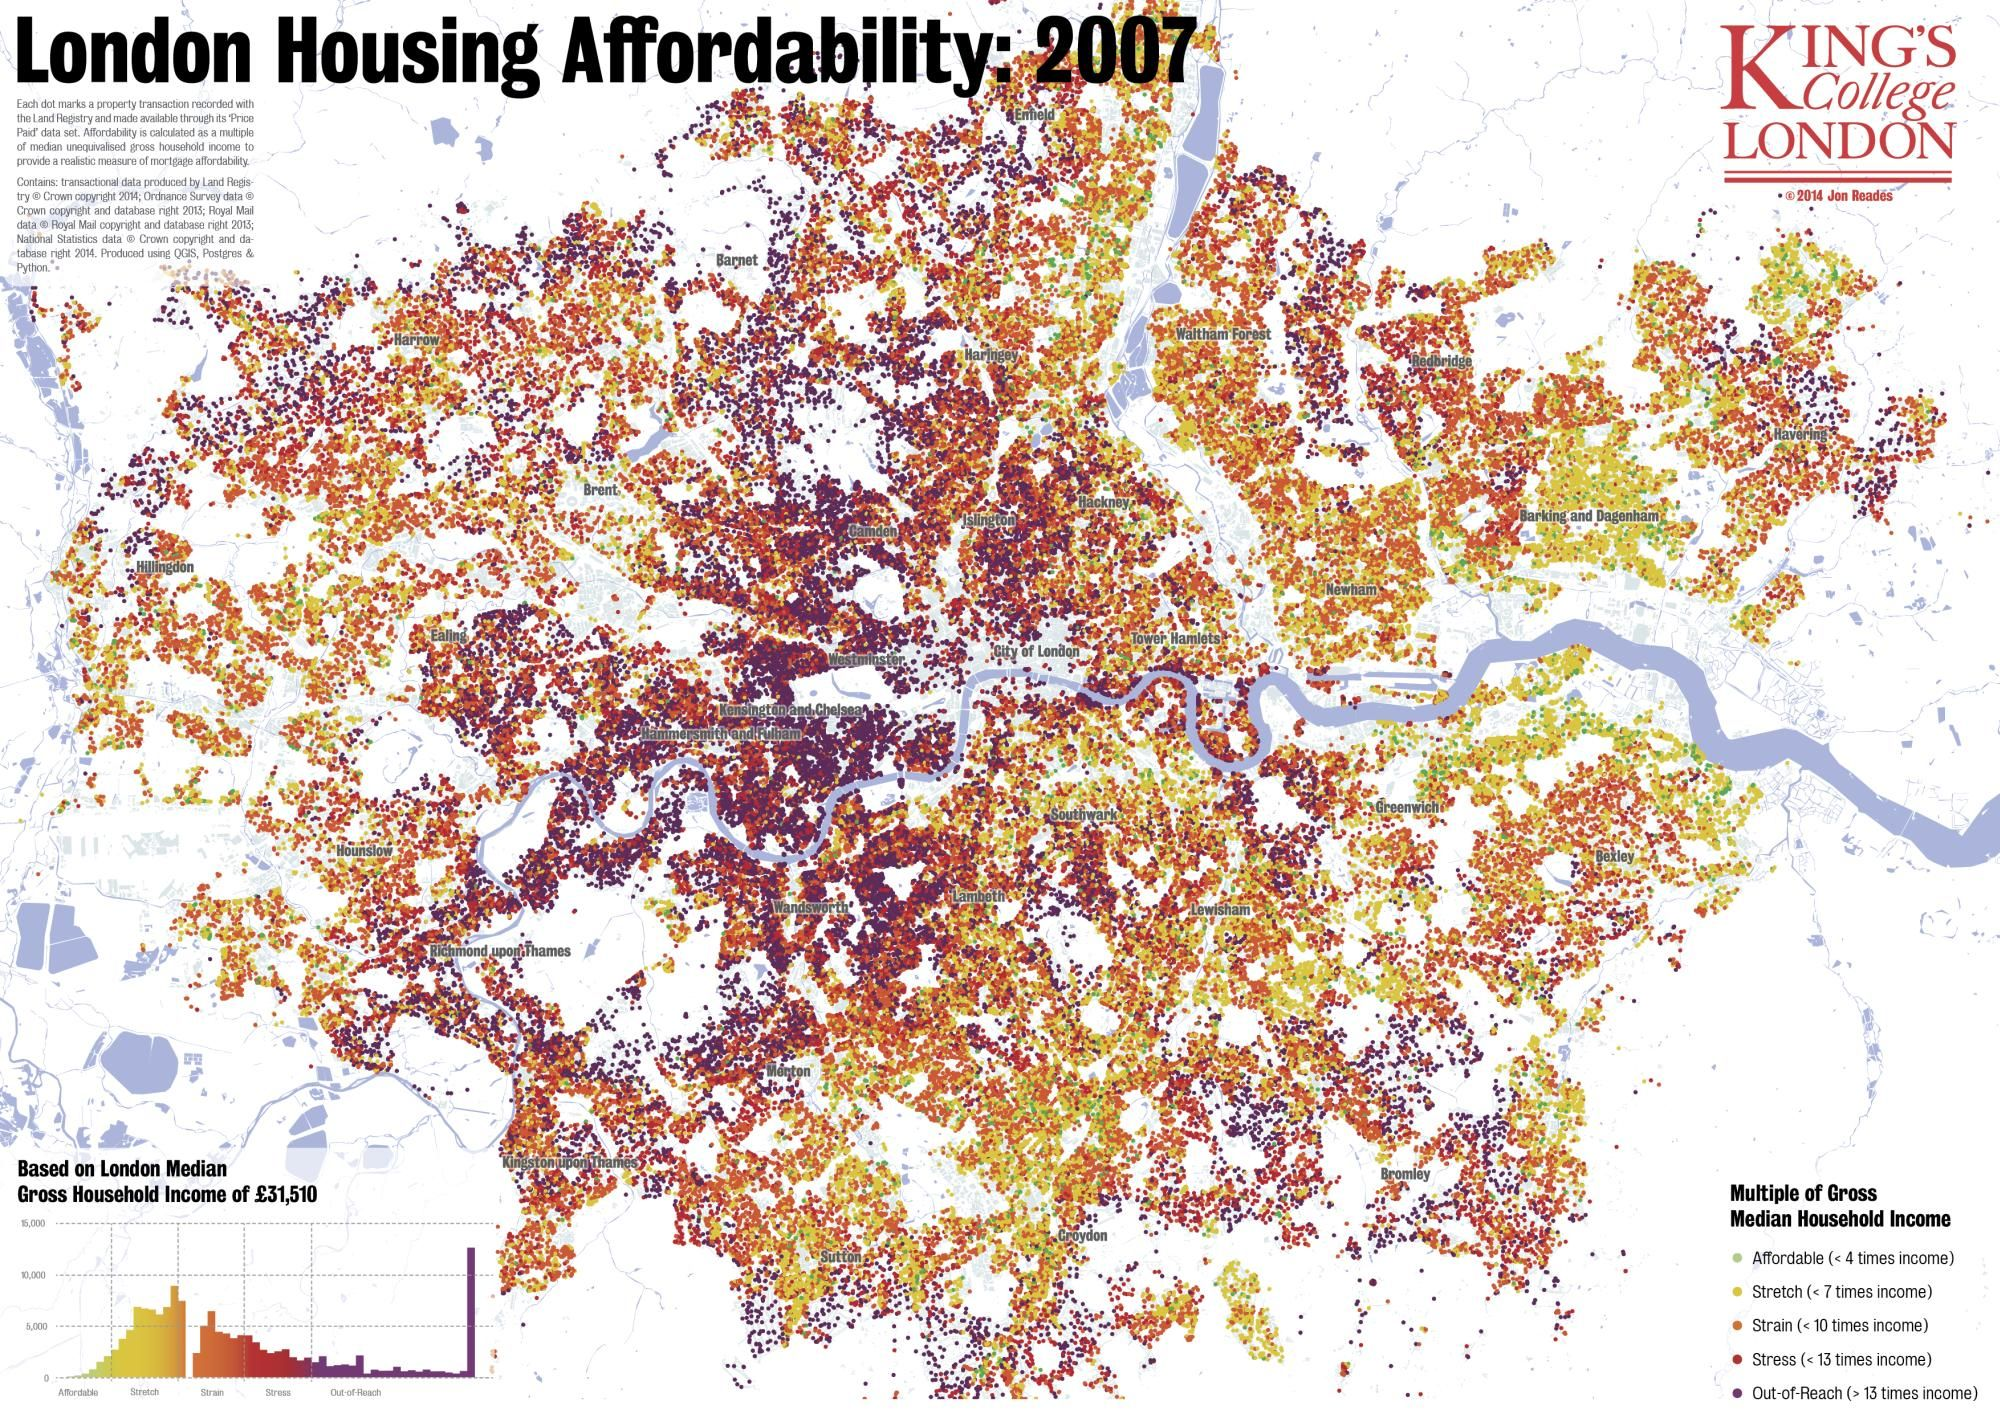 Kings College London Map.London Housing Affordability London Maps Pinterest London Map